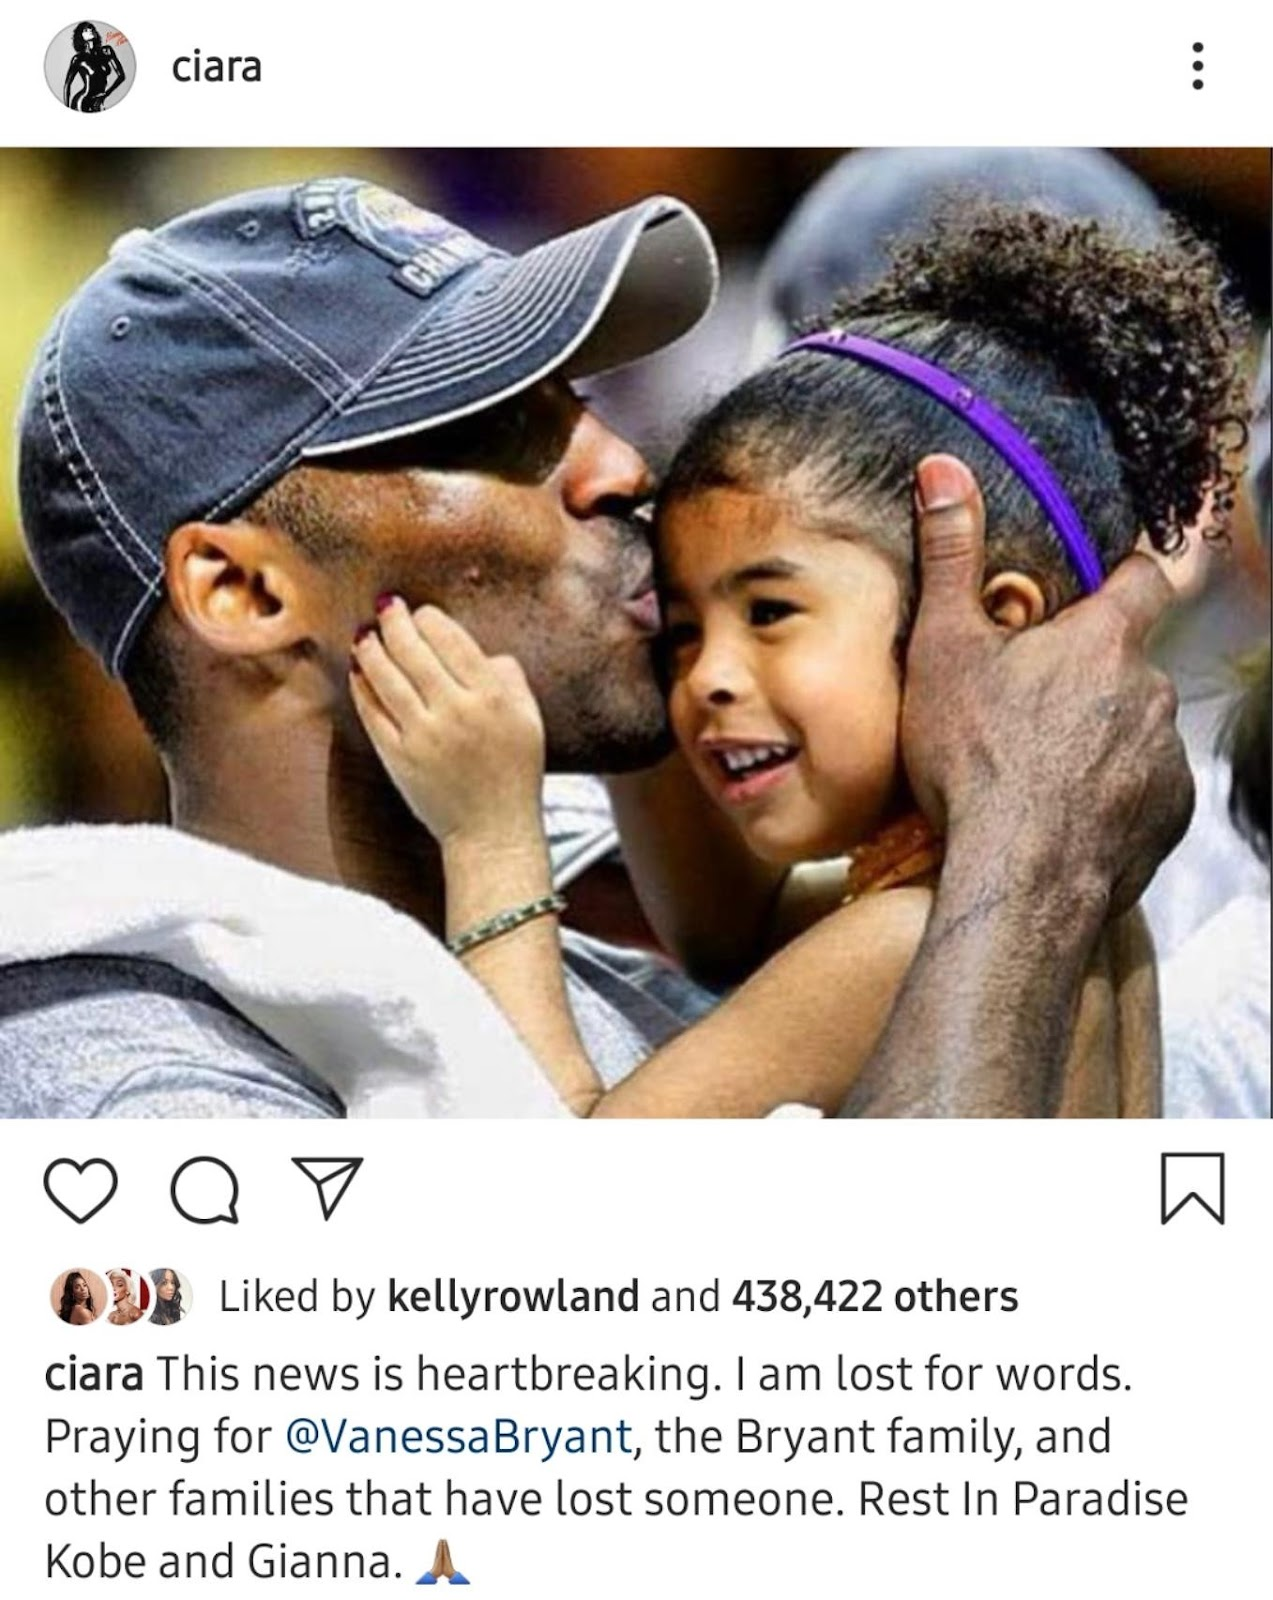 Ciara Liked by kellyrowland and 438,422 others Ciara This news is heartbreaking. I am lost for words. Praying for @VanessaBryant, the Bryant family, and other families that have lost someone. Rest In Paradise Kobe and Gianna. A